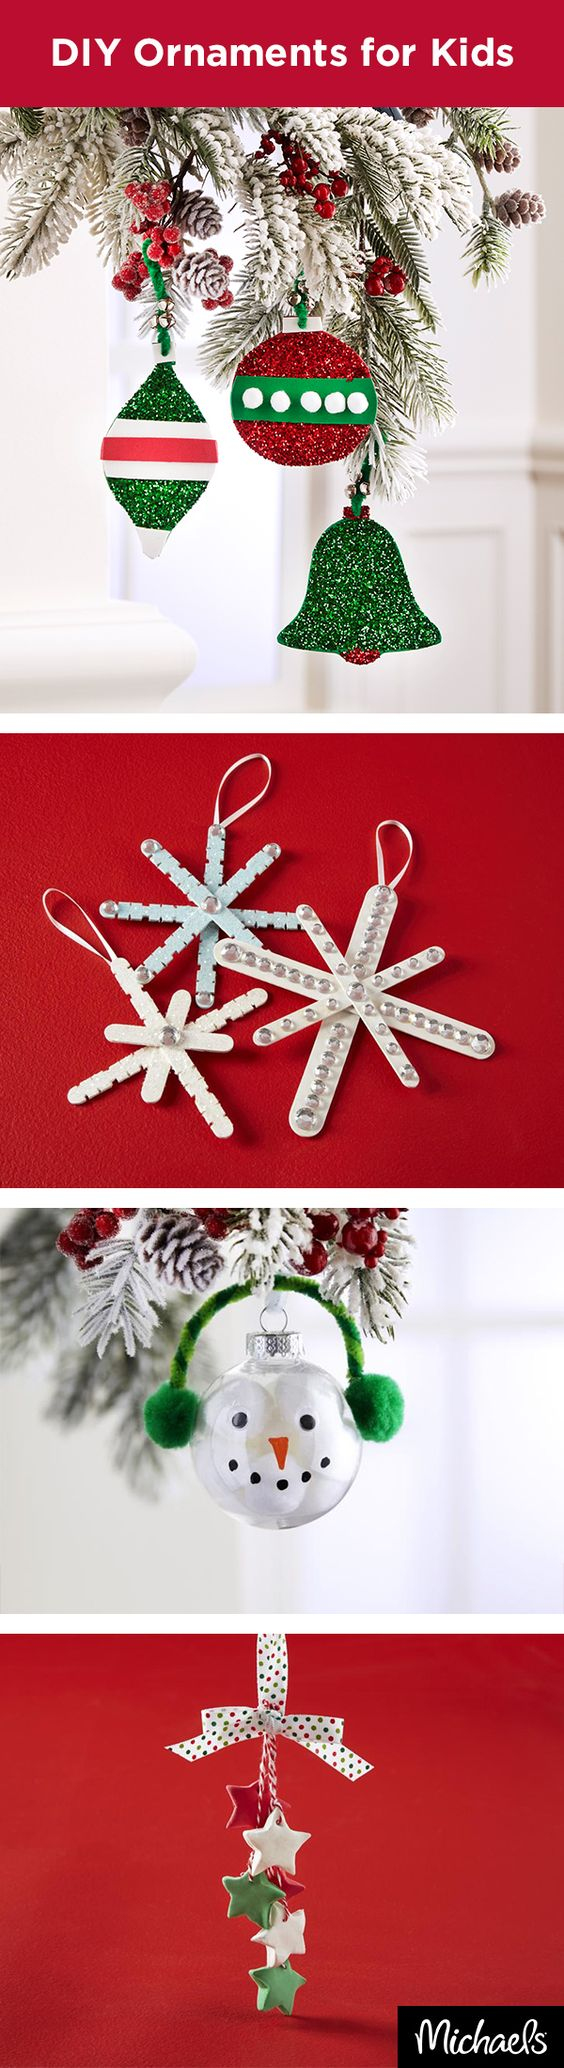 Diy ornaments craft foam and craft sticks on pinterest for Christmas trees at michaels craft store